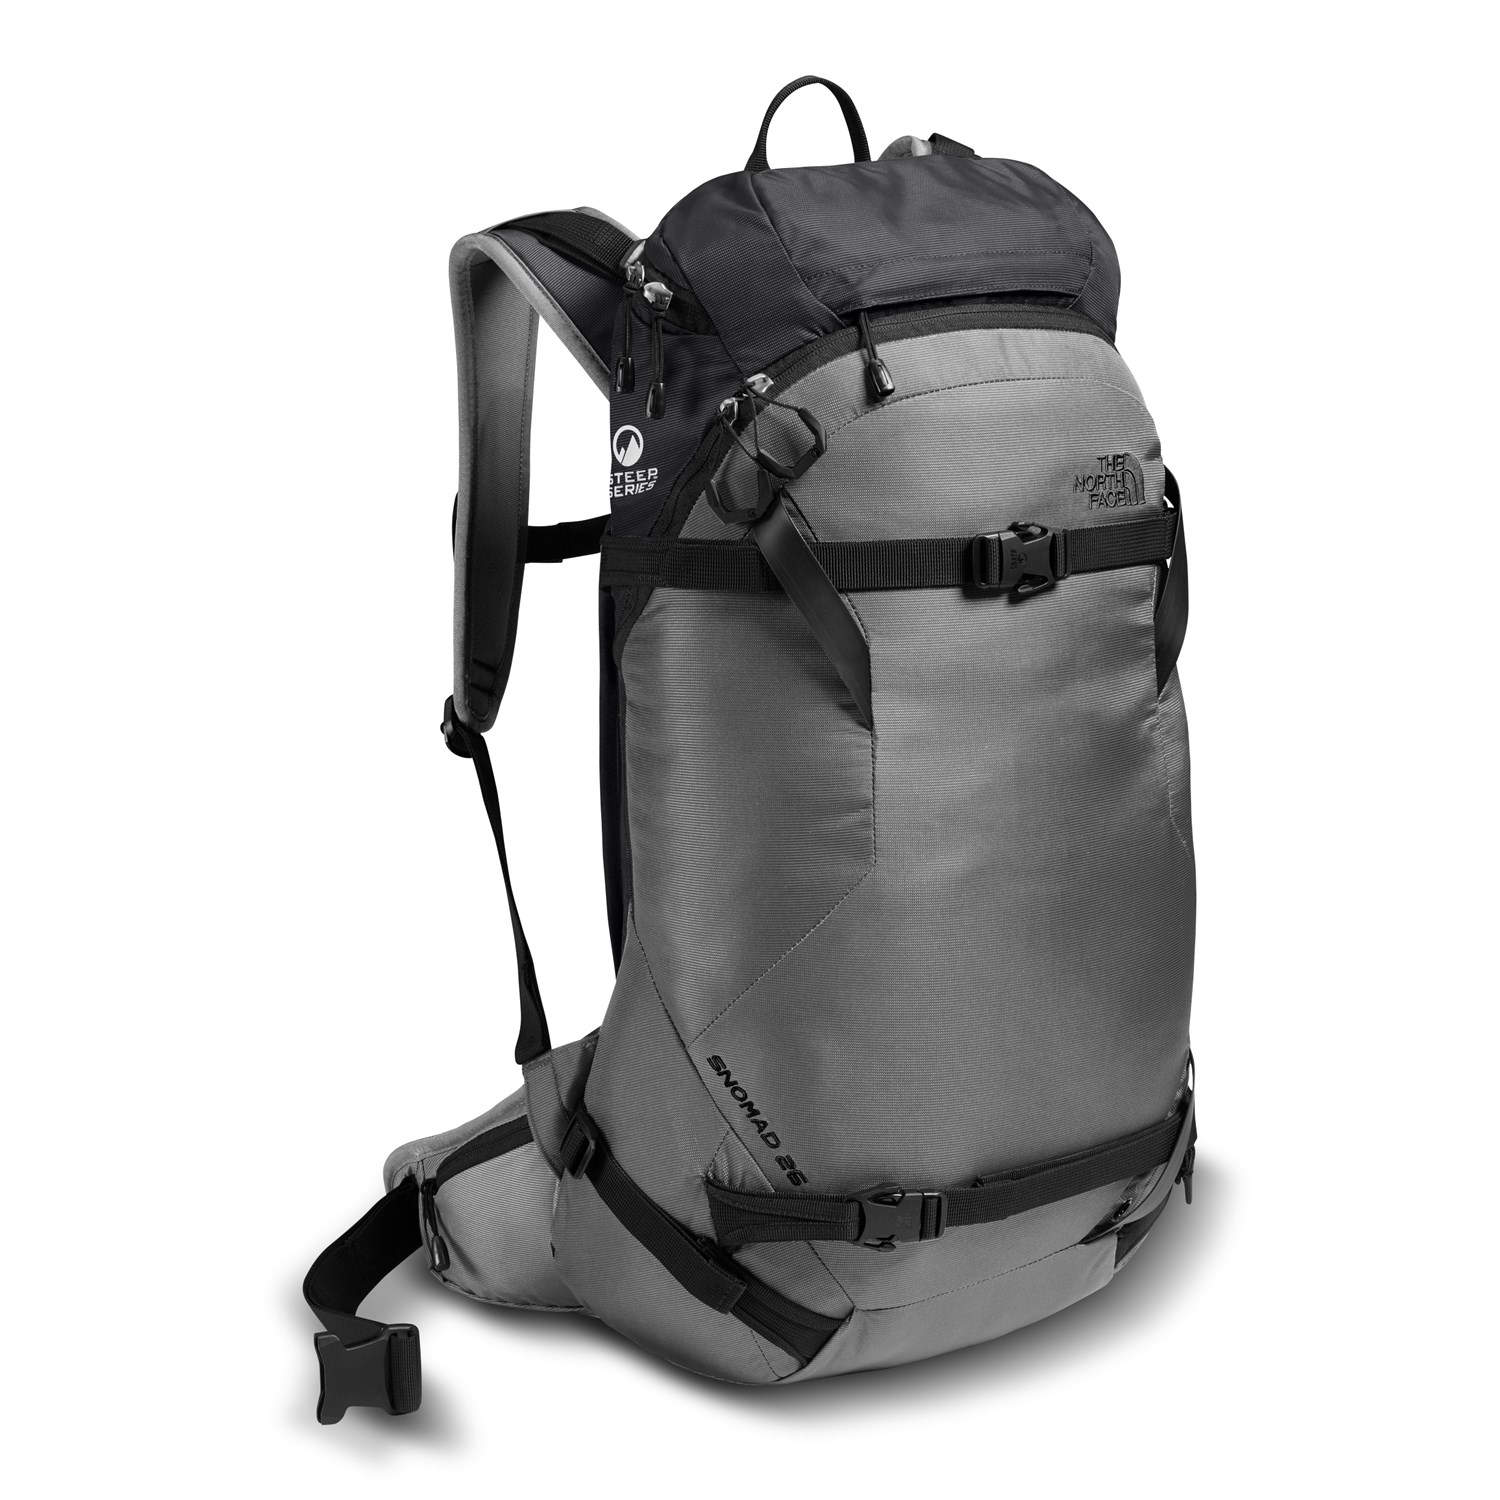 6f17bebc4 The North Face Snomad 26 Backpack